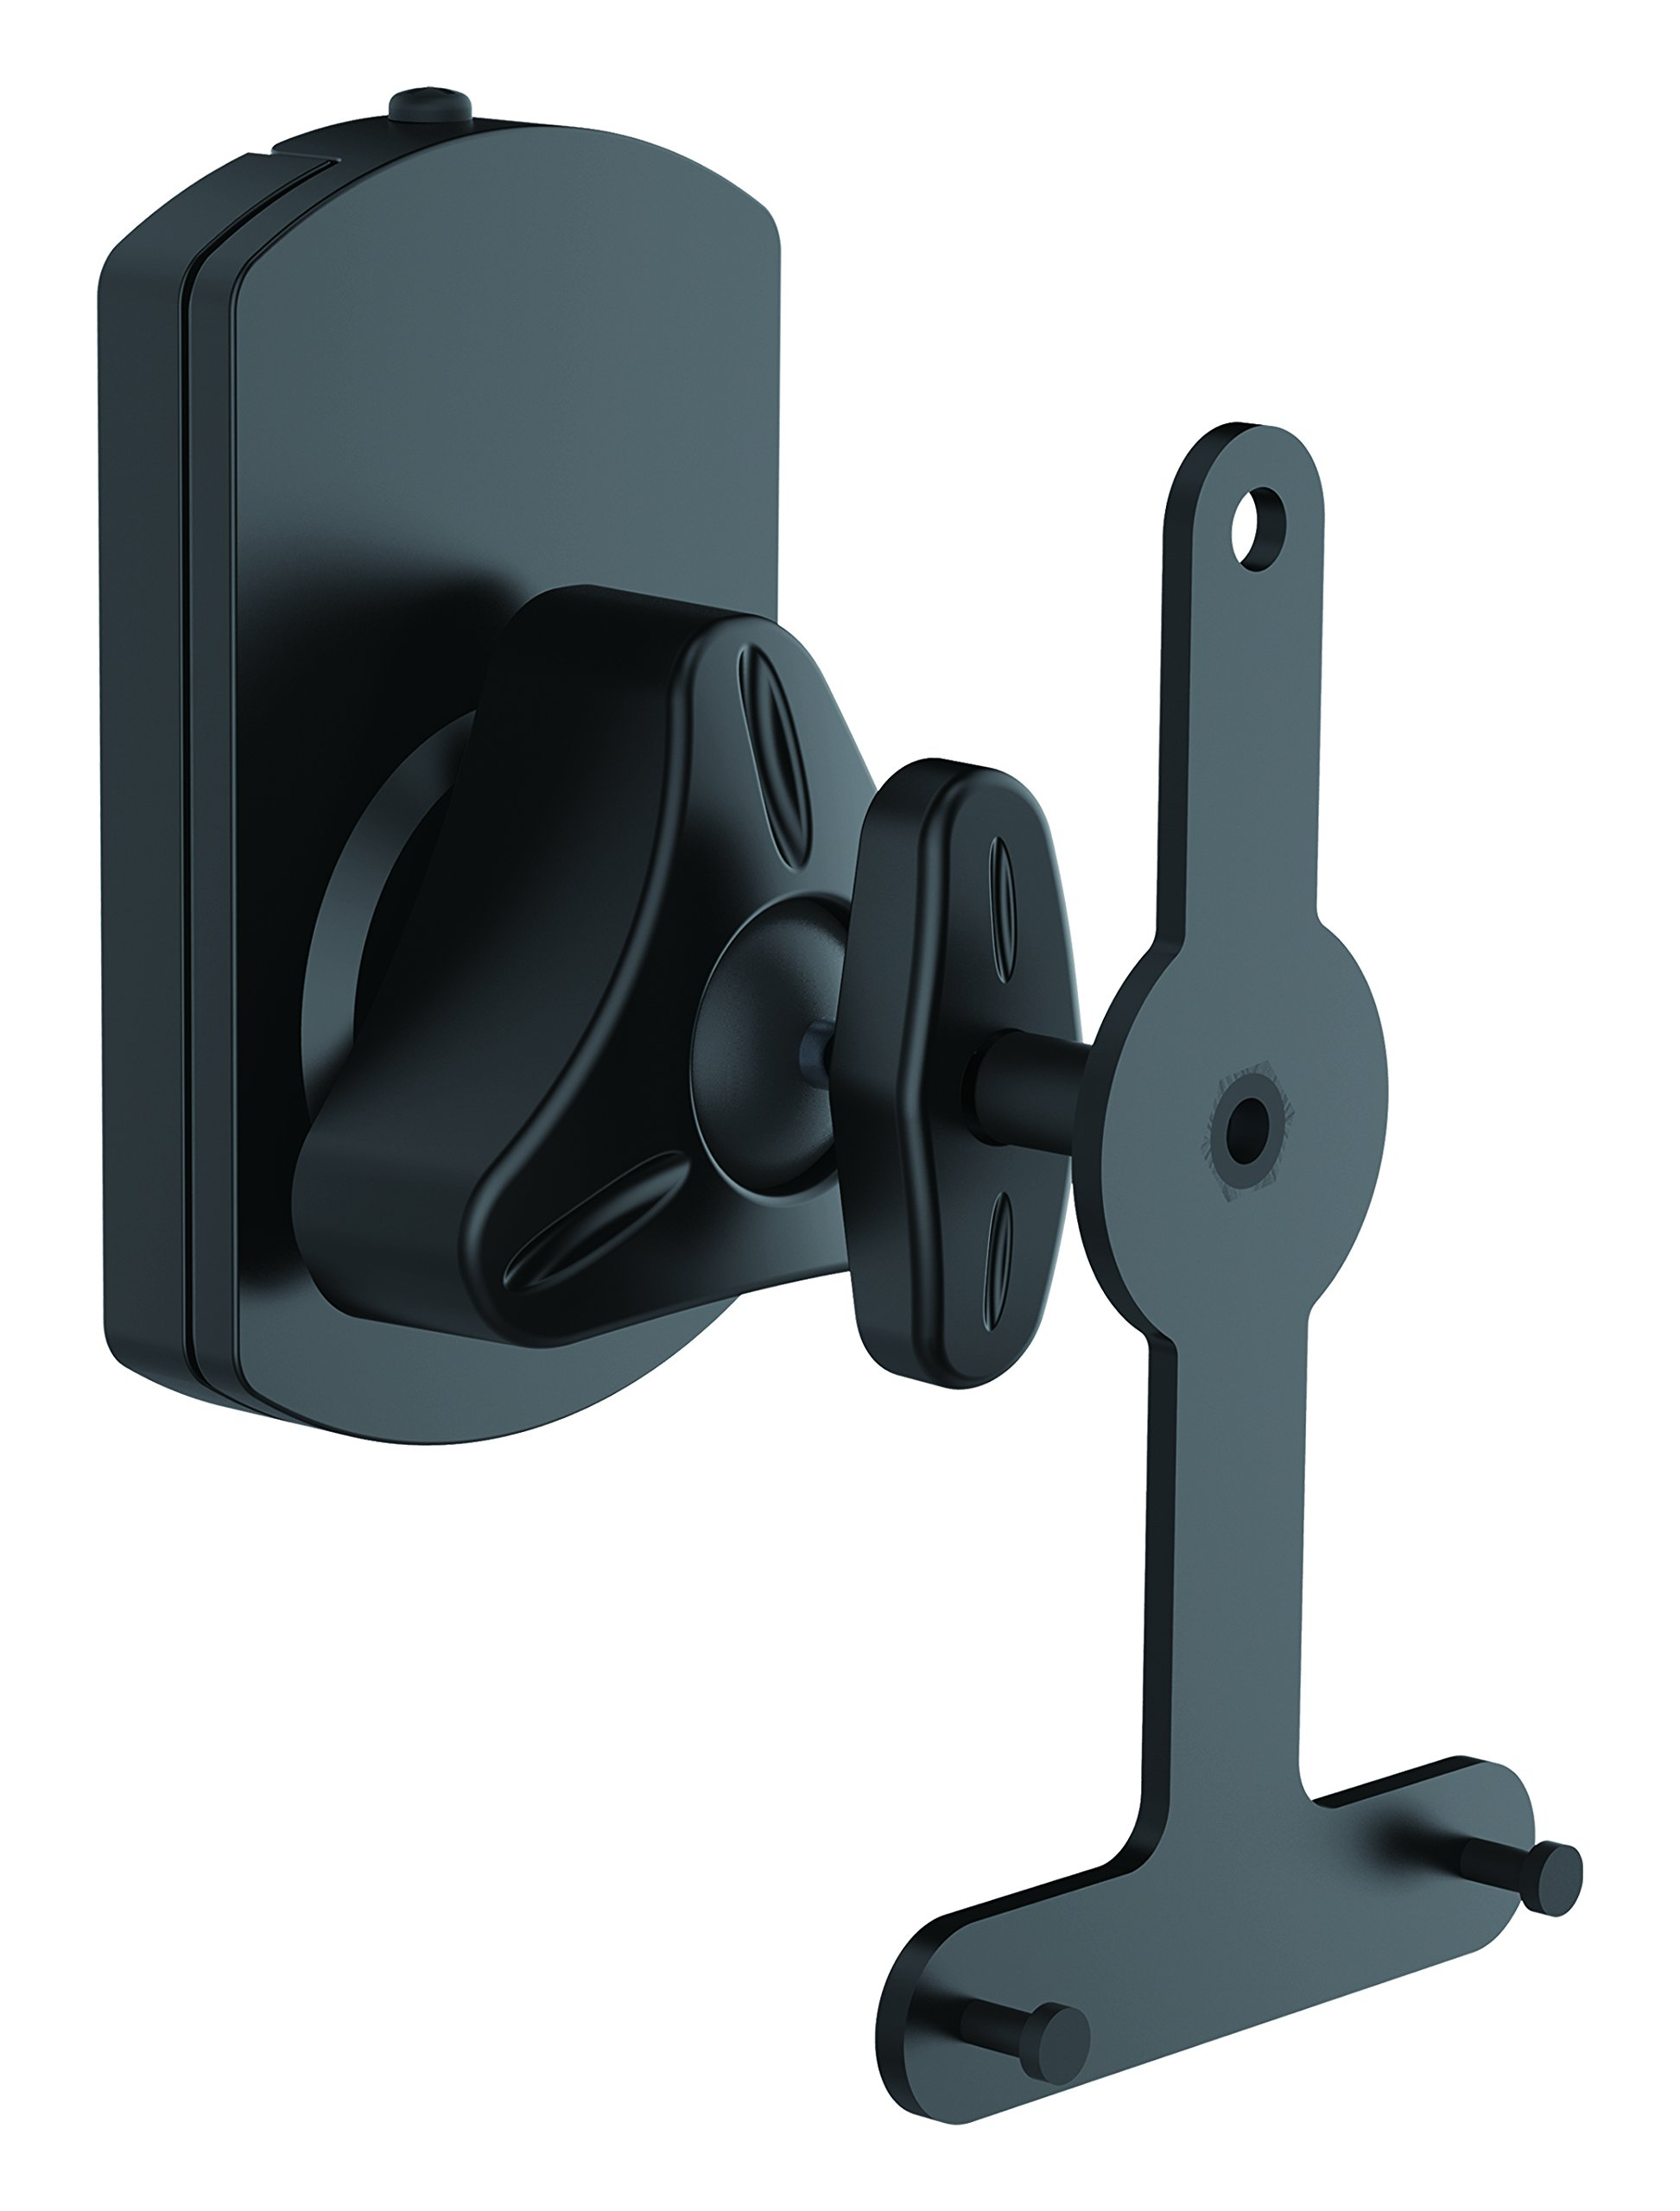 Sonos Dual Universal Wall Mount Speaker Stands, Tilt/Swivel Adjustable Brackets, Pair (for Sonos Play 1 and Play 3)